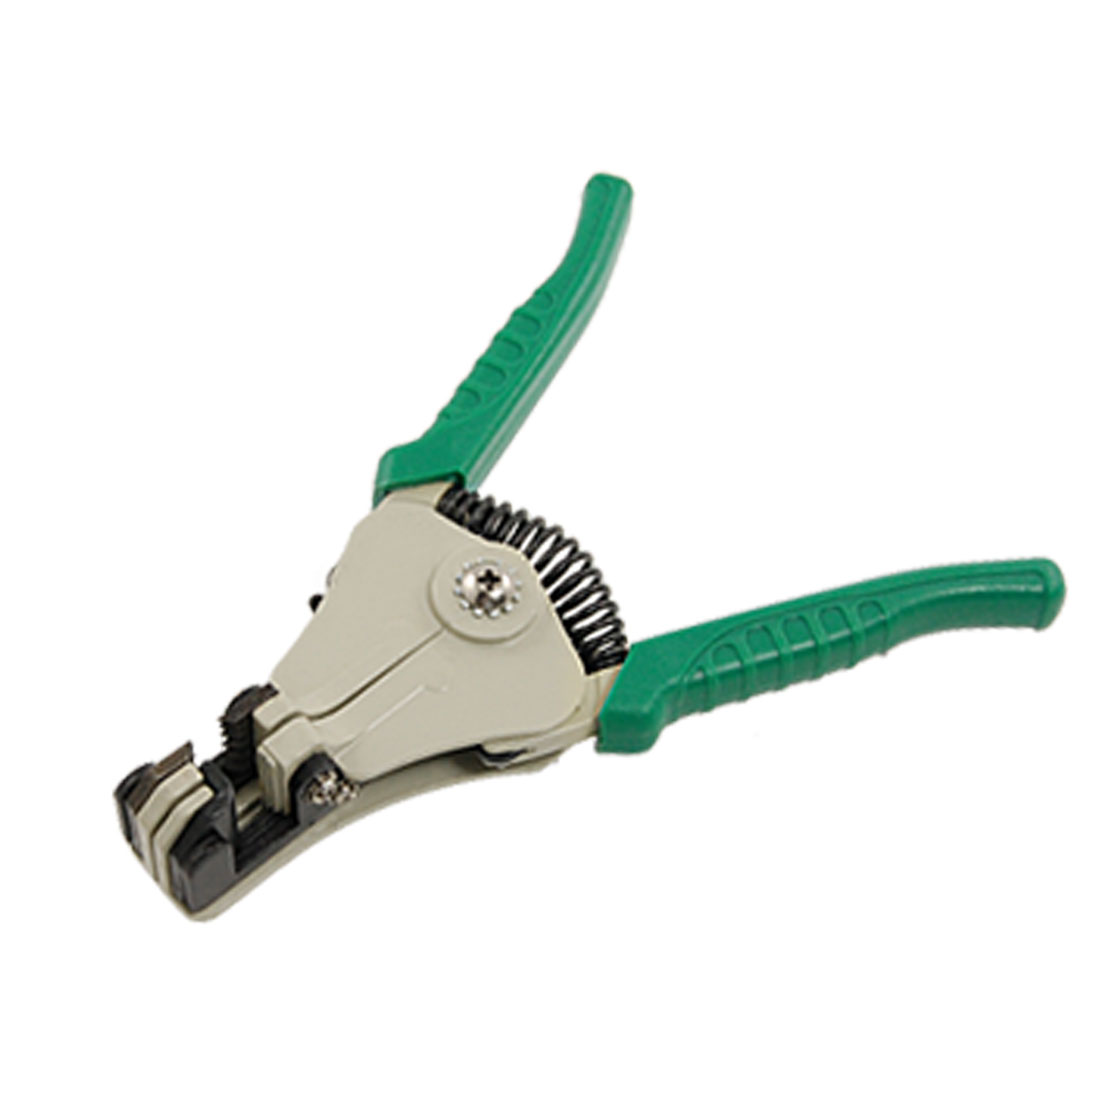 Green Nonslip Handle Spring Loaded Automatic Wire Stripper